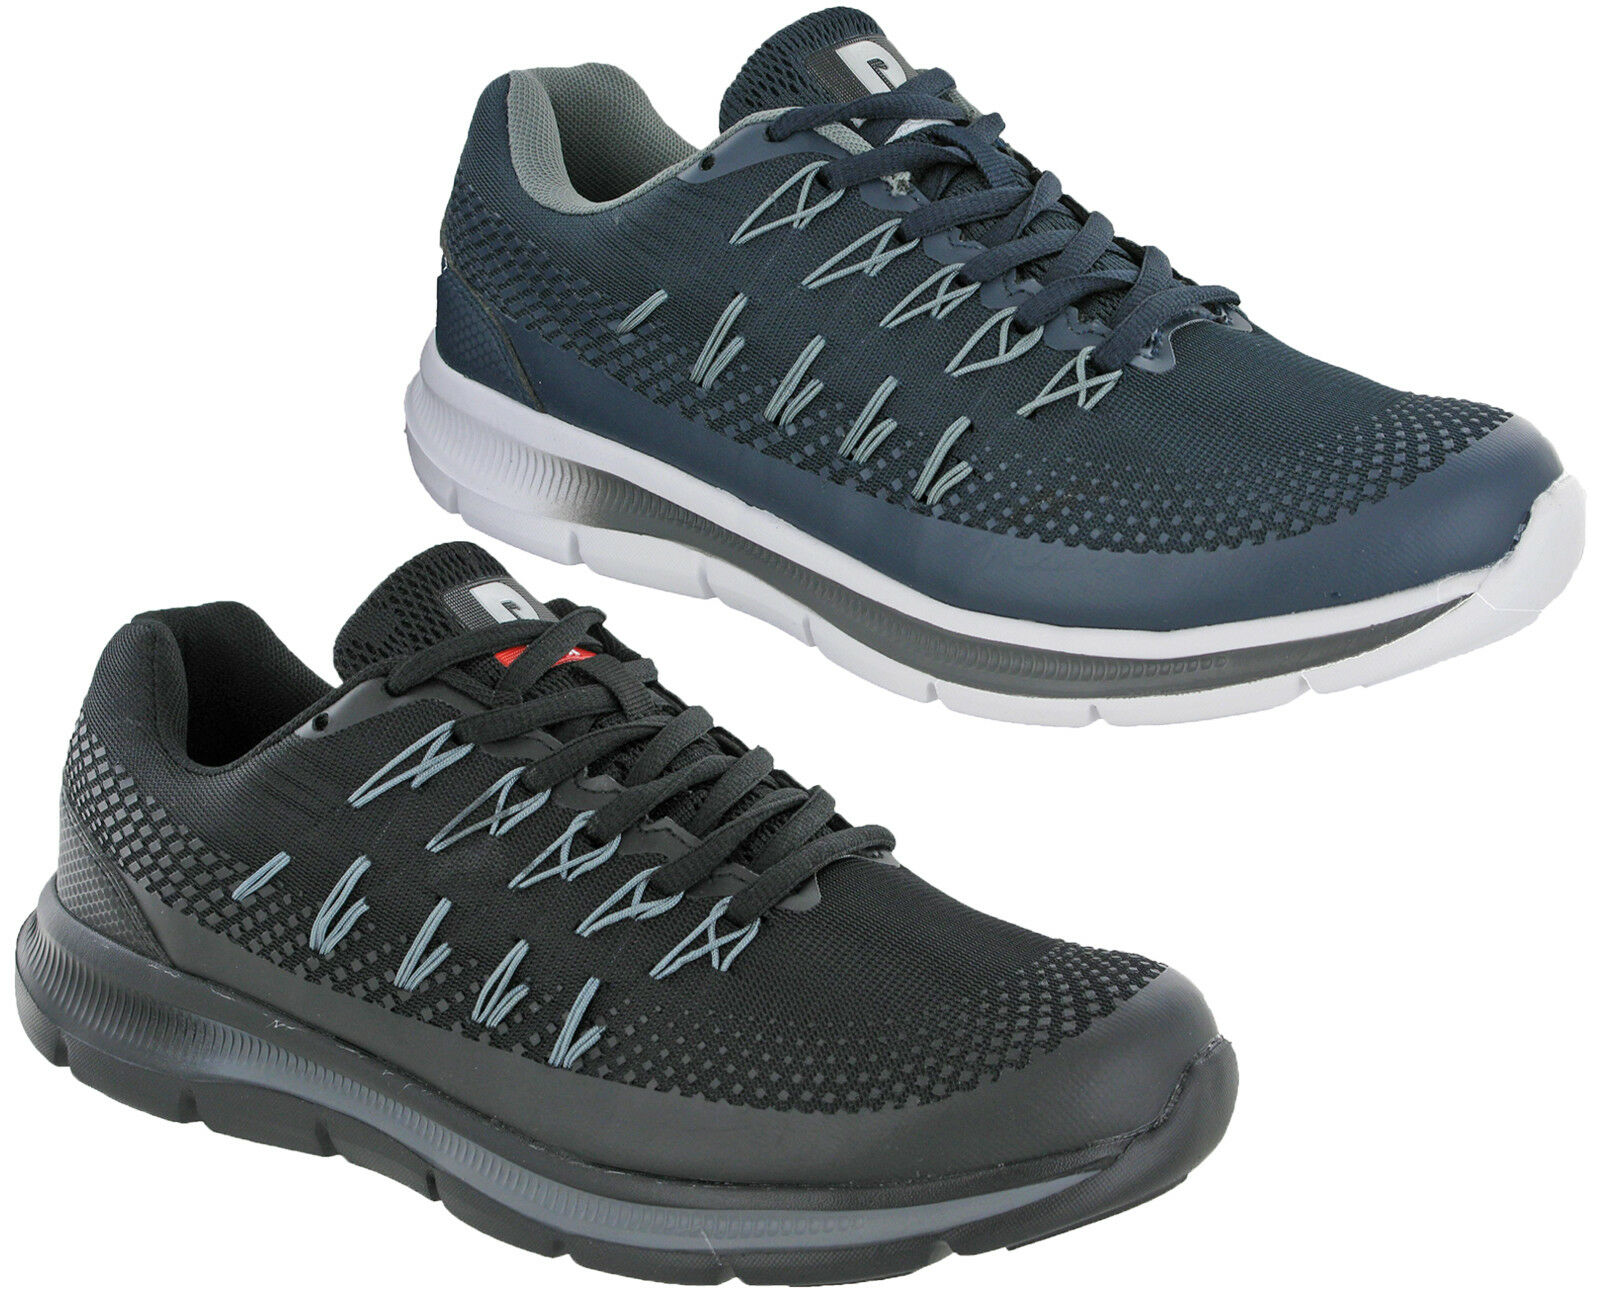 DEK Mens Running Trainers Gym Memory  Foam Lightweight Padded Soft shoes M459  cheapest price